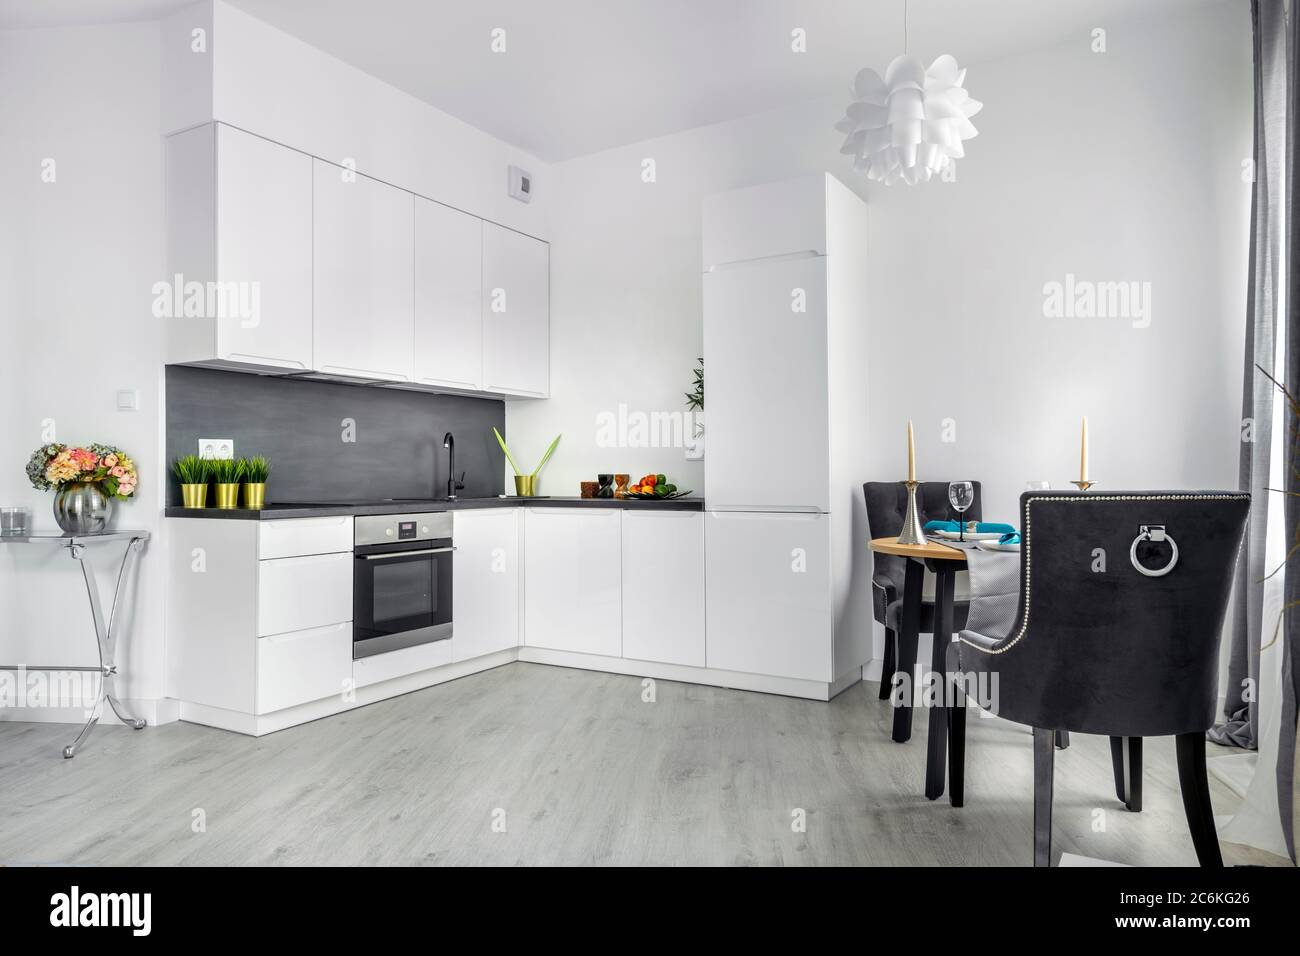 Modern Interior Design Living Room With Open Kitchen In Small Apartment Stock Photo Alamy